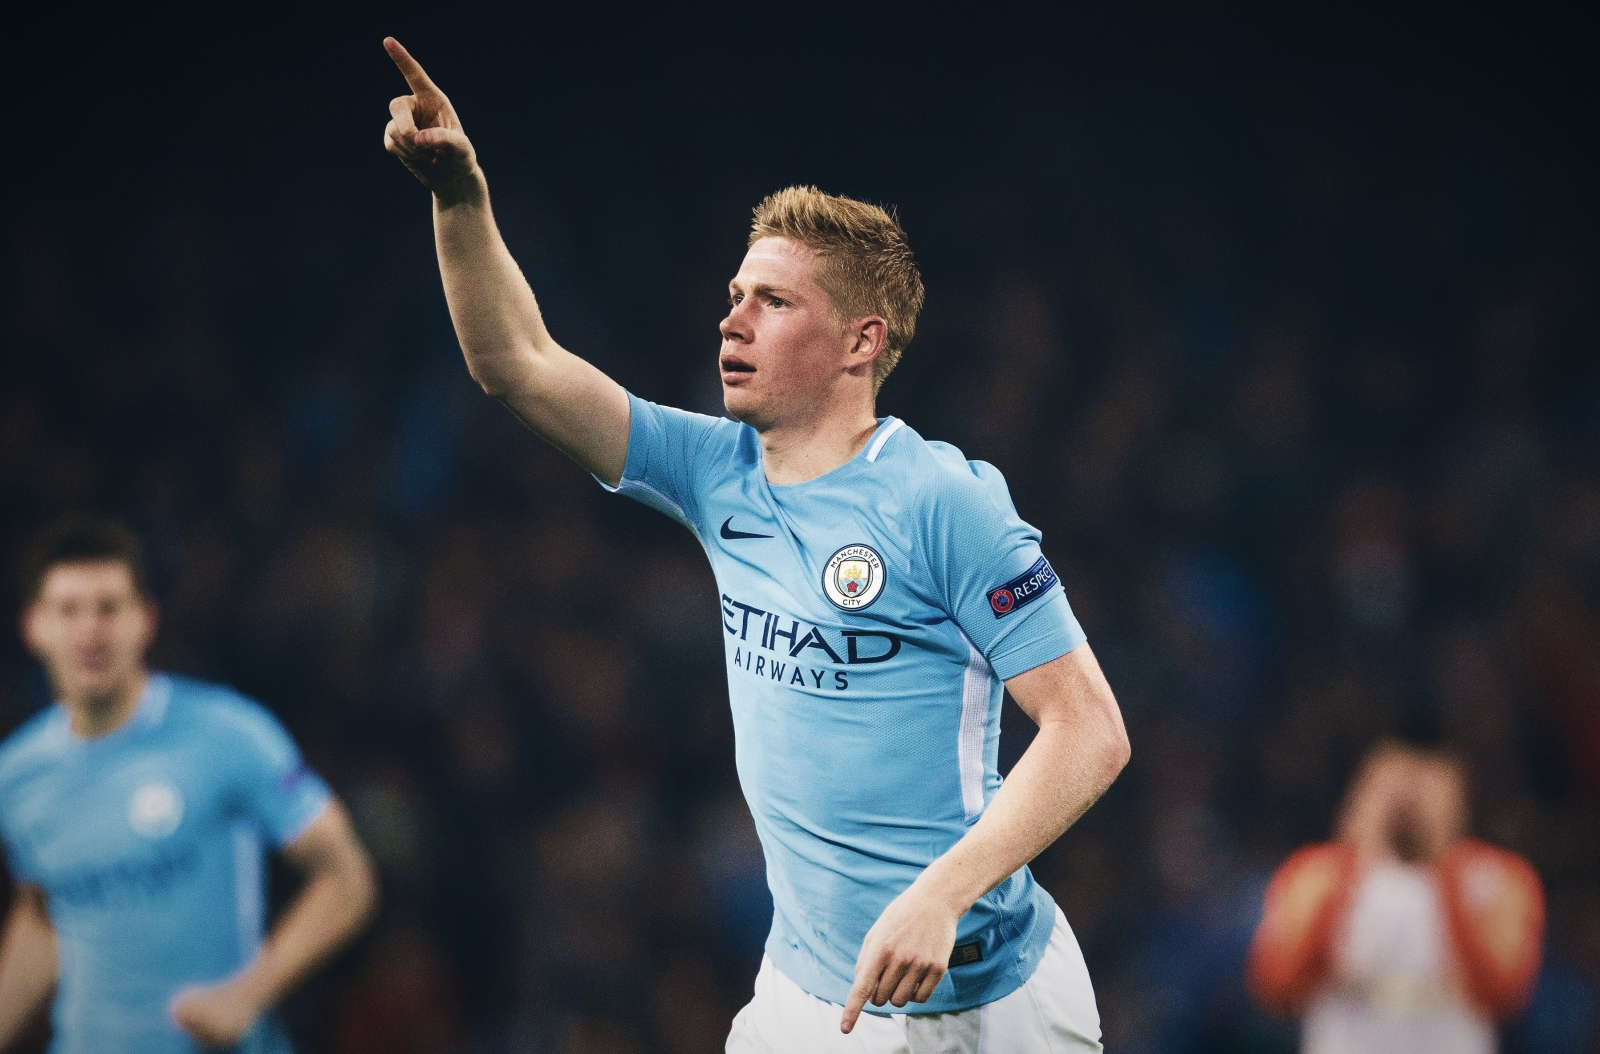 'Every team would love to have De Bruyne' – Aguero praises Man City team-mate